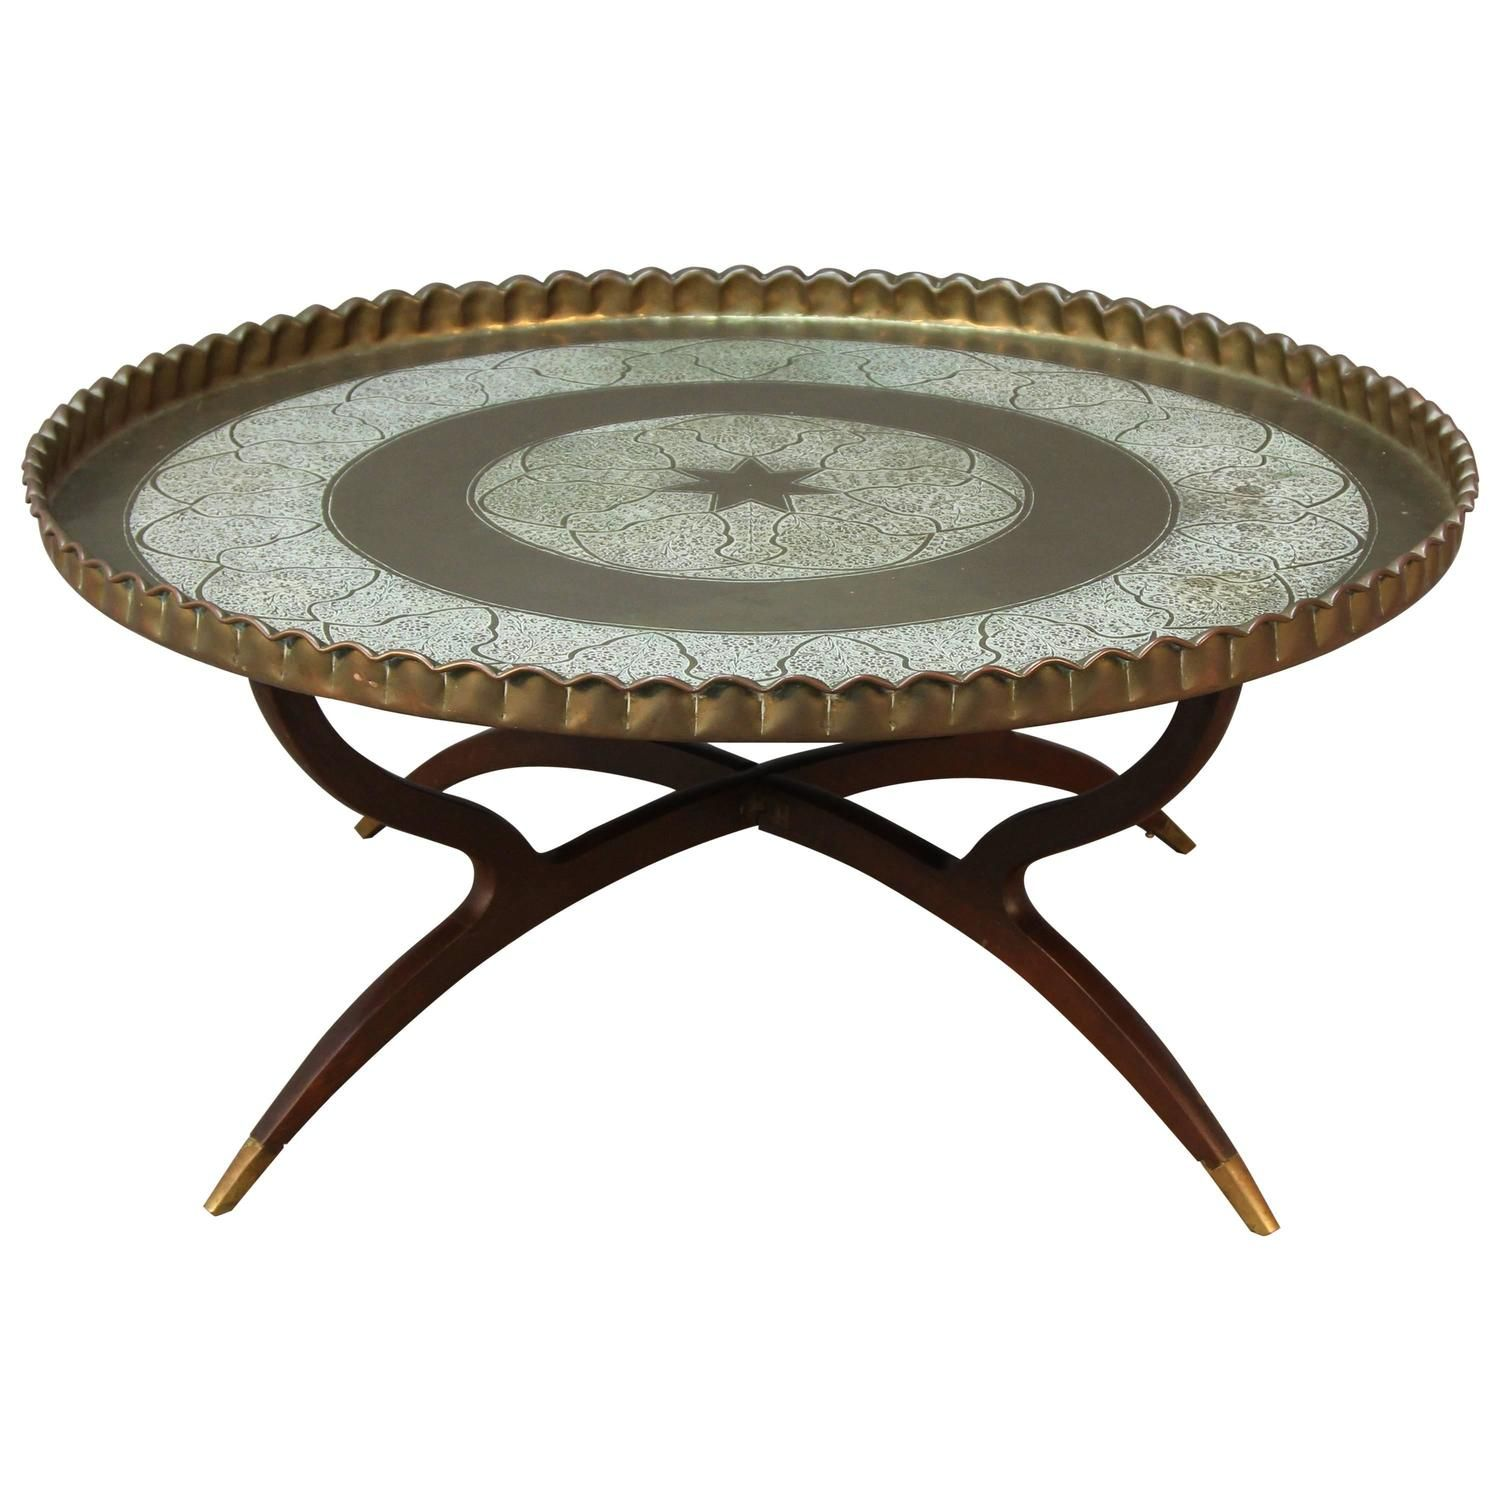 Large Round Vintage Brass Tray Coffee Table On Midcentury Folding Spider Base Coffee Table Brass Tray Table [ 1500 x 1500 Pixel ]